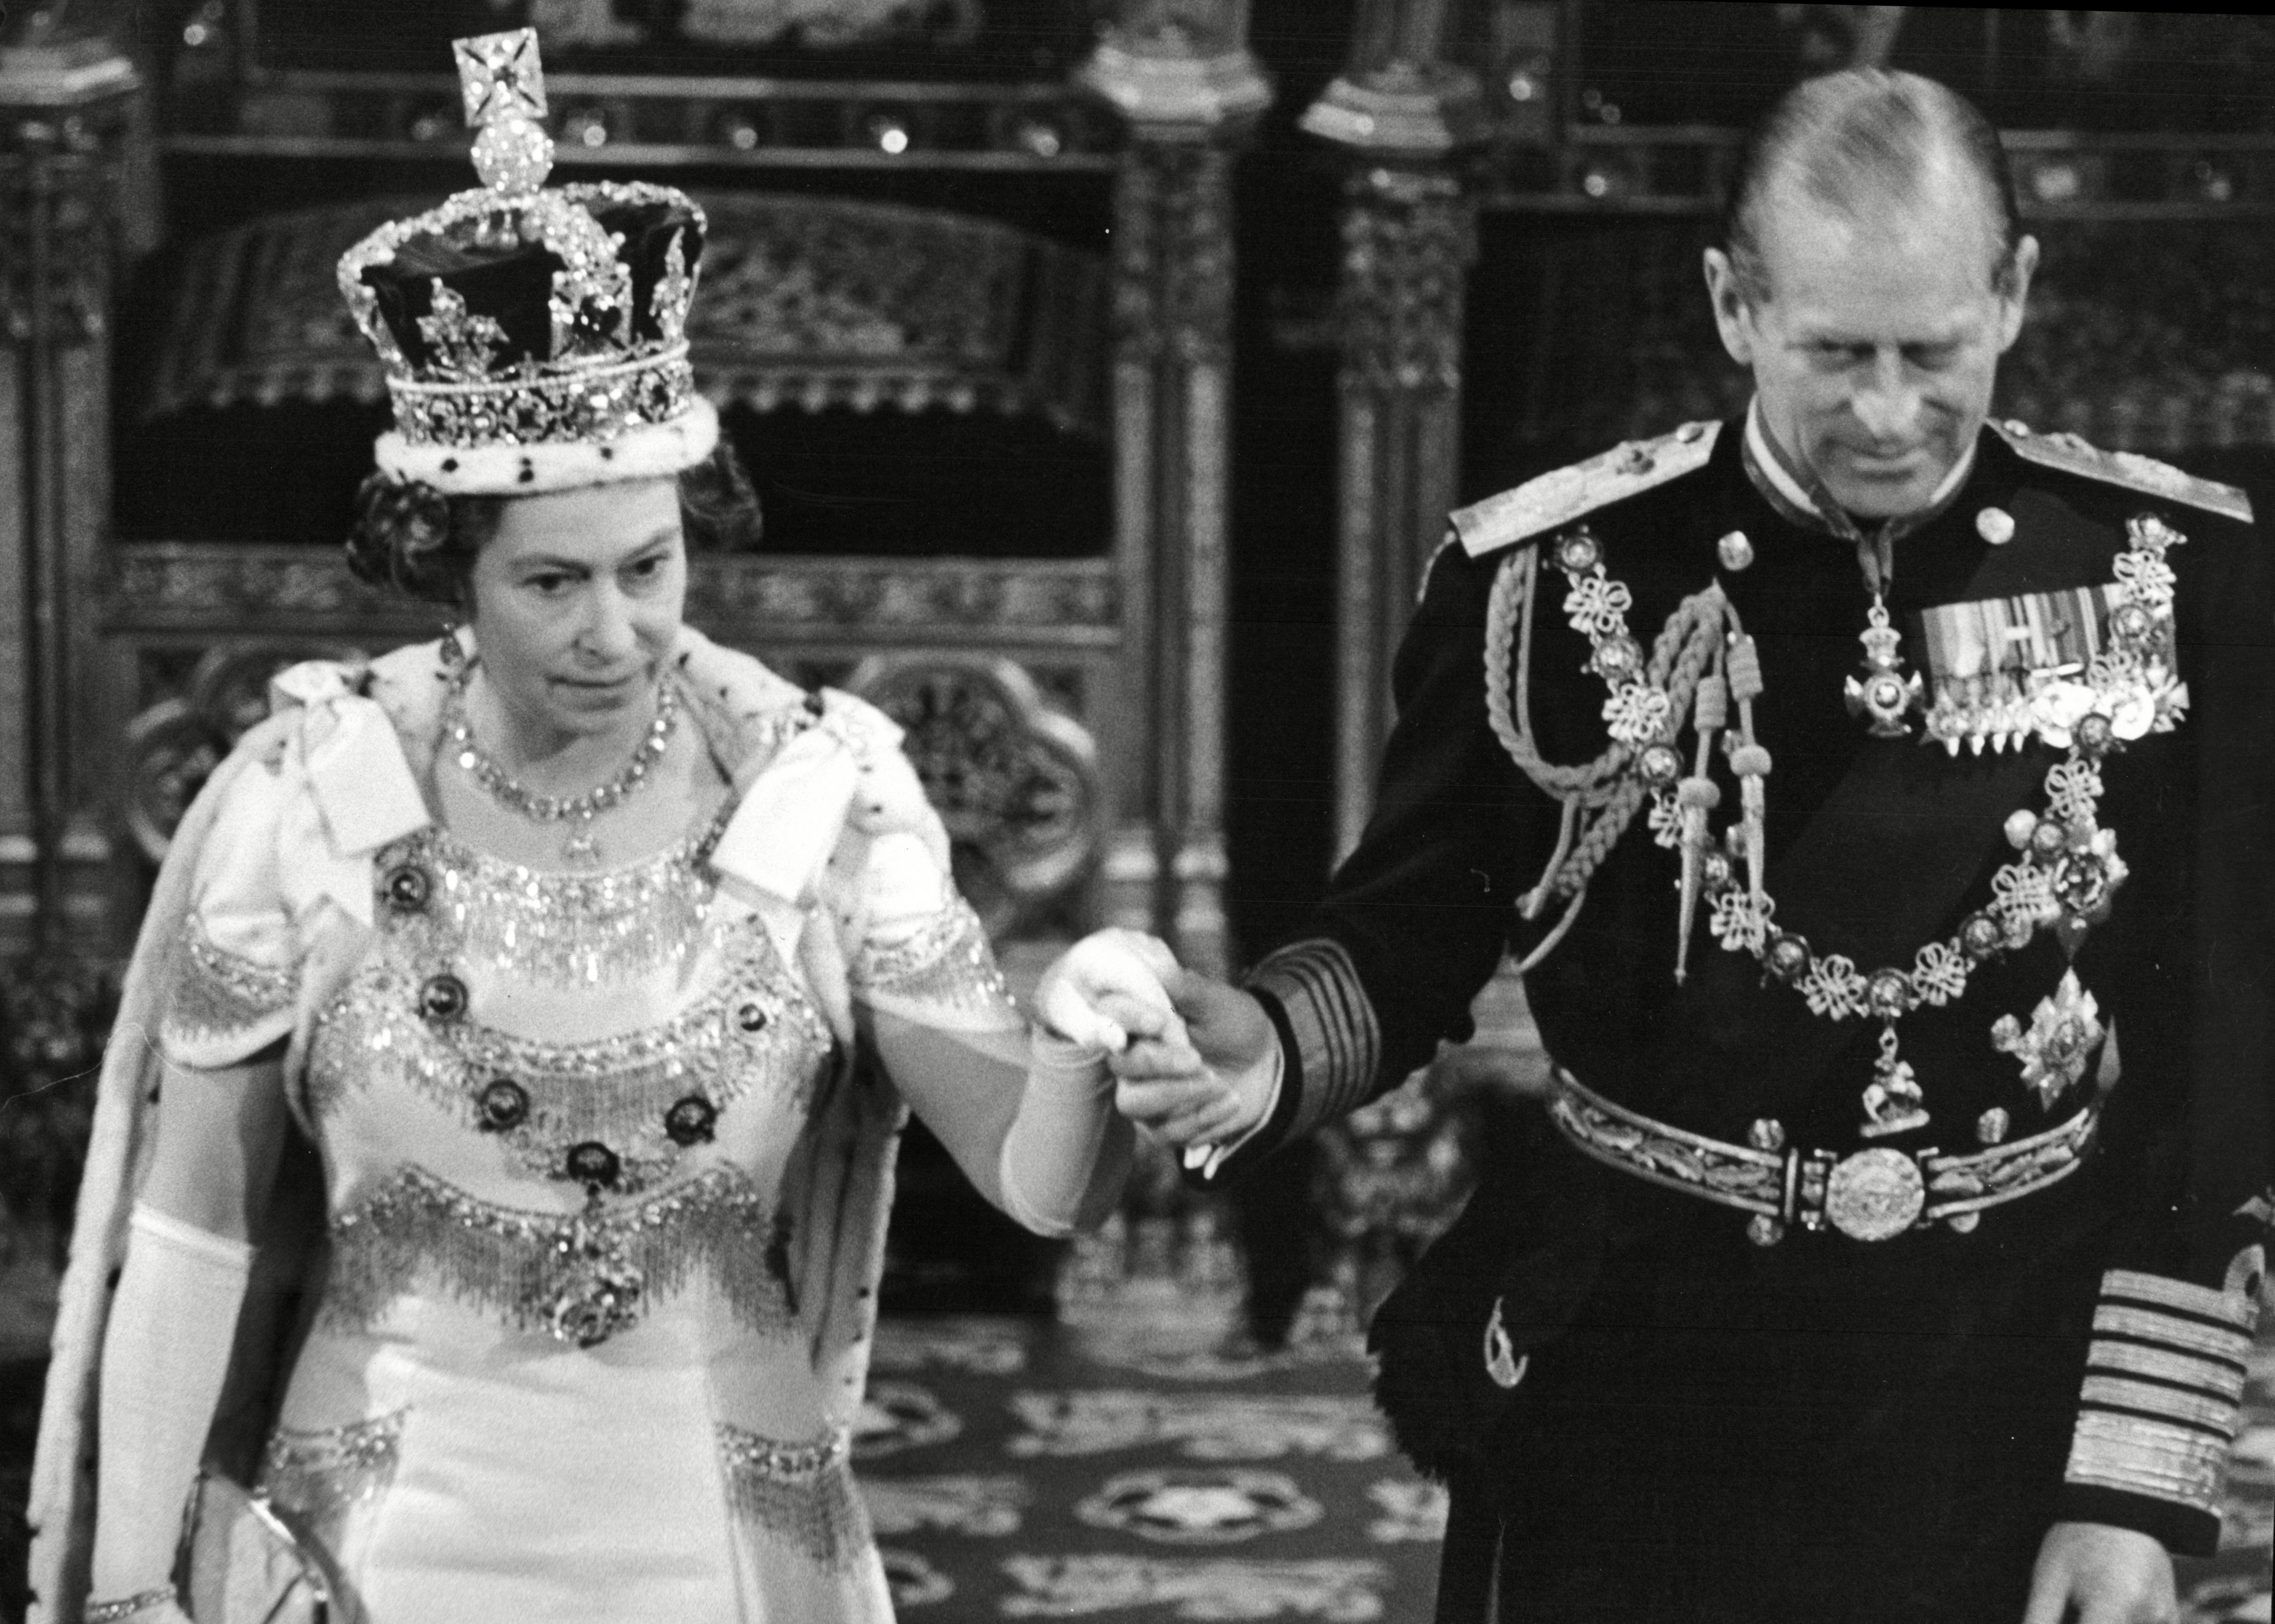 Mandatory Credit: Photo by Geoffrey White/ANL/Shutterstock (1477922a) Queen Elizabeth II And Prince Philip At House Of Lords For State Opening Of Parliament 1978. Queen Elizabeth Ii And Prince Philip At House Of Lords For State Opening Of Parliament 1978.